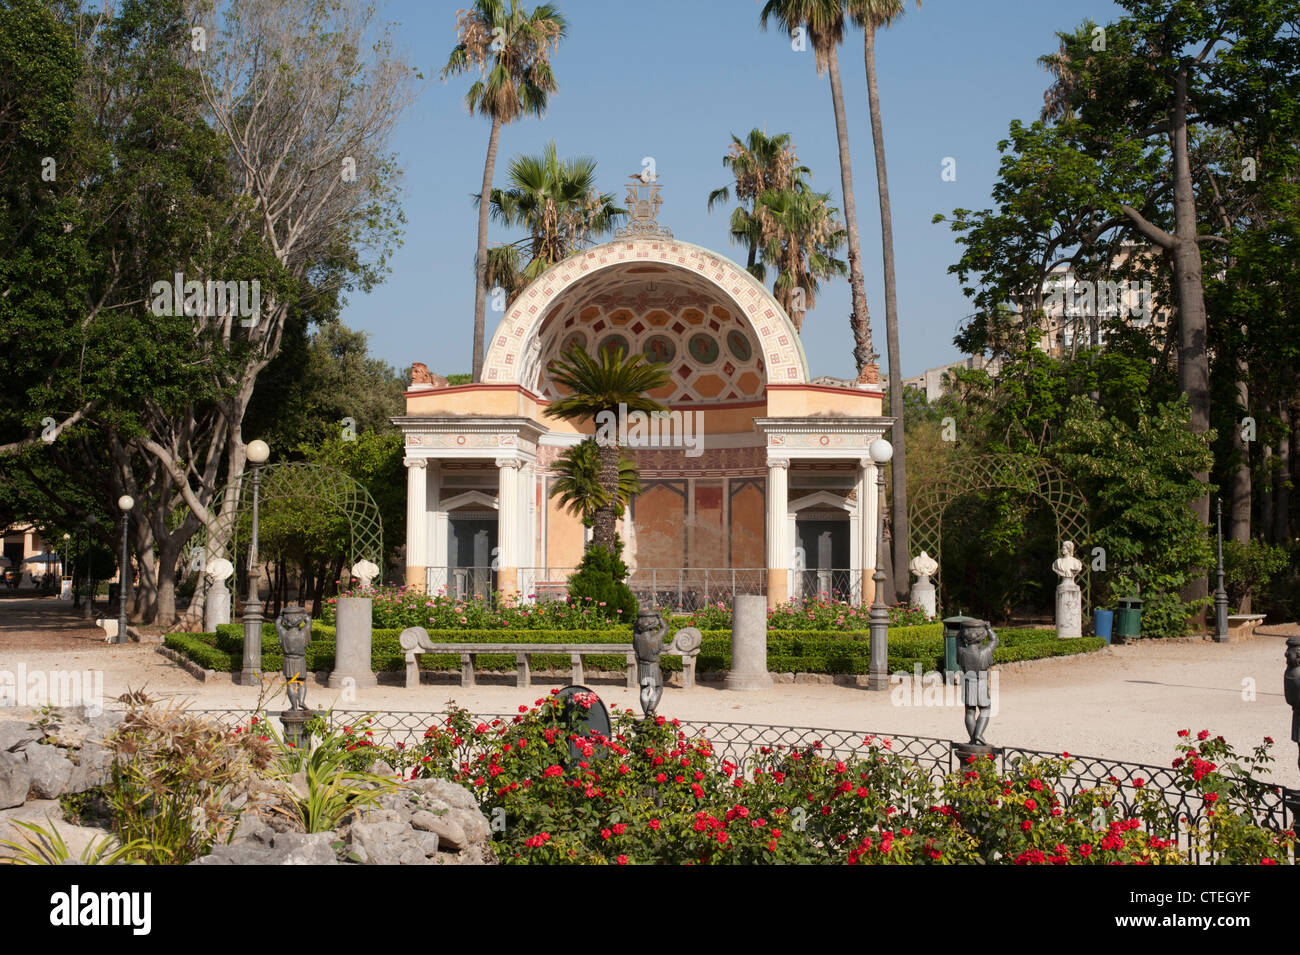 Villa Giulia, an 18th century garden adjacent to the Orto ...